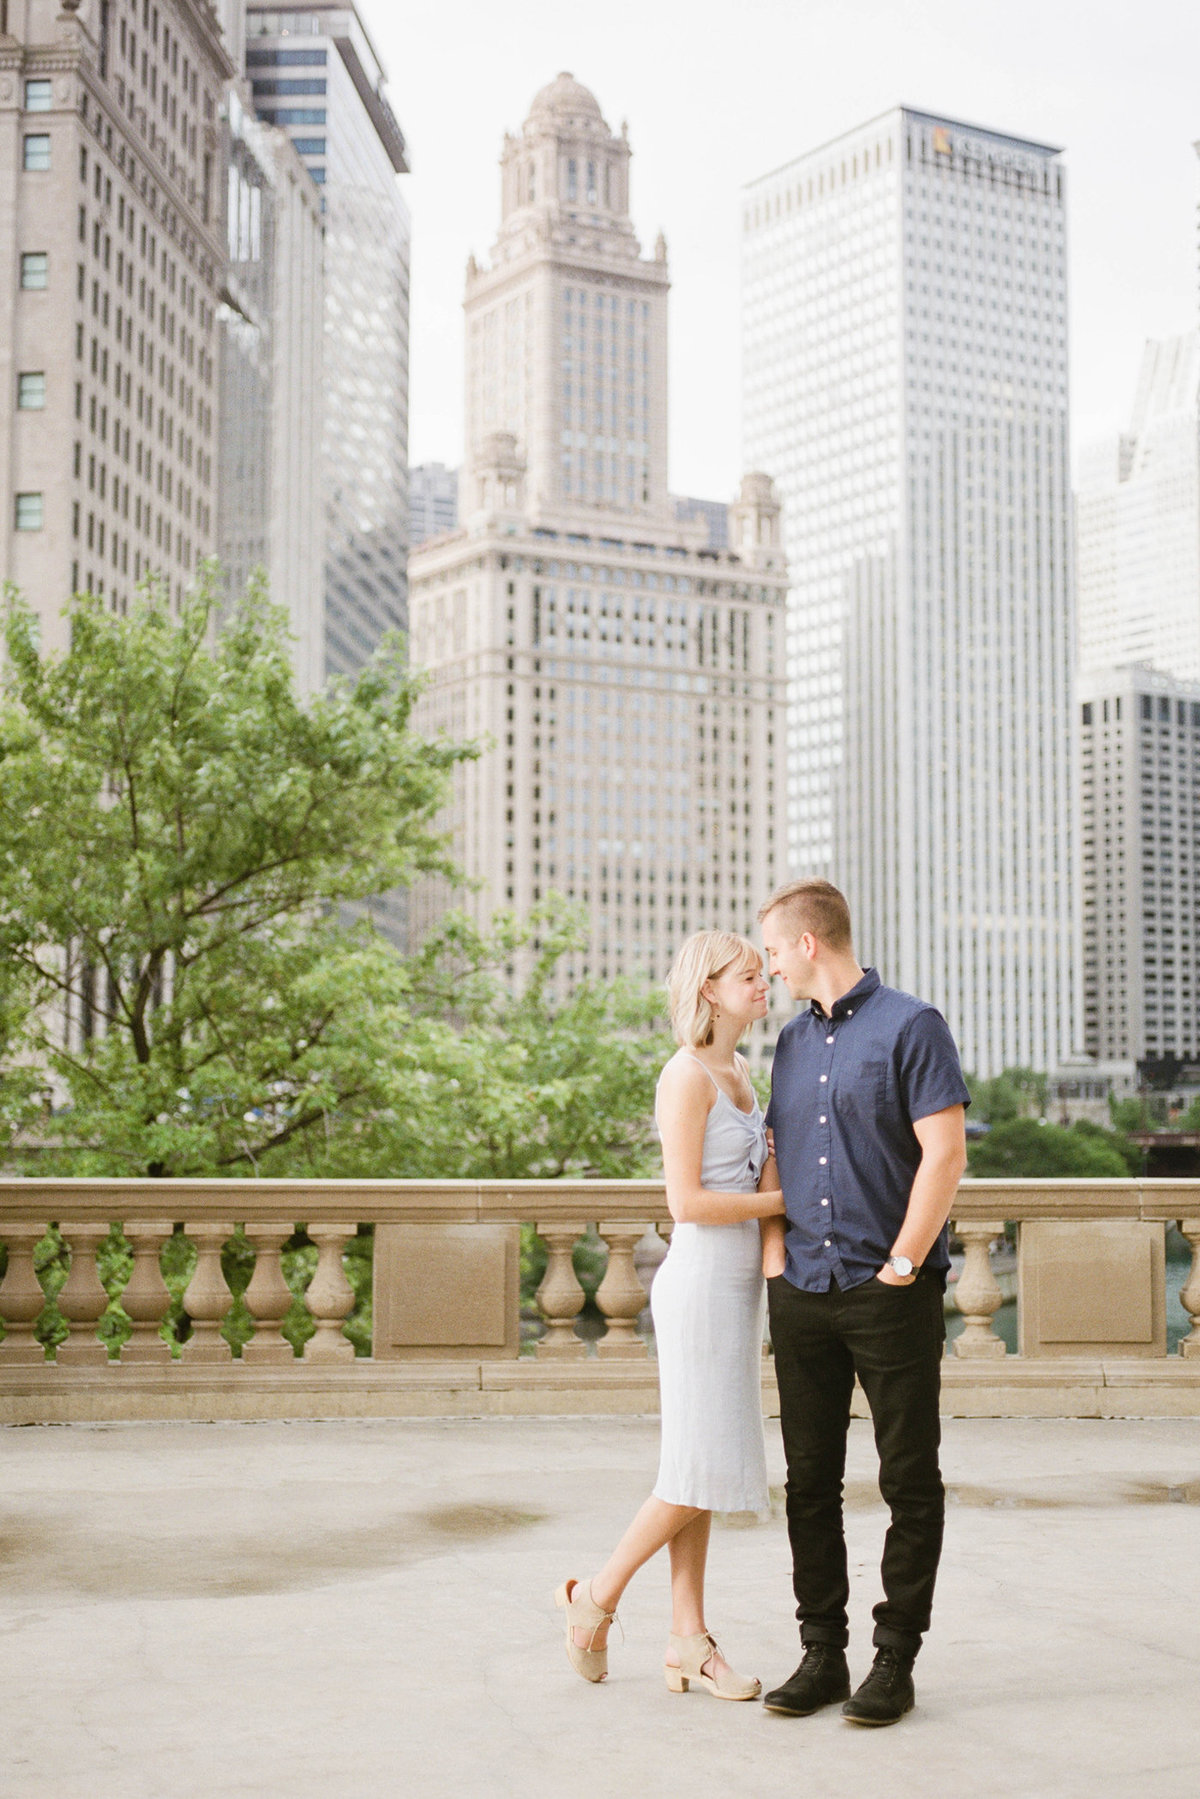 Chicago Wedding Photographer - Fine Art Film Photographer - Sarah Sunstrom - Sam + Morgan - Engagement Session - 14